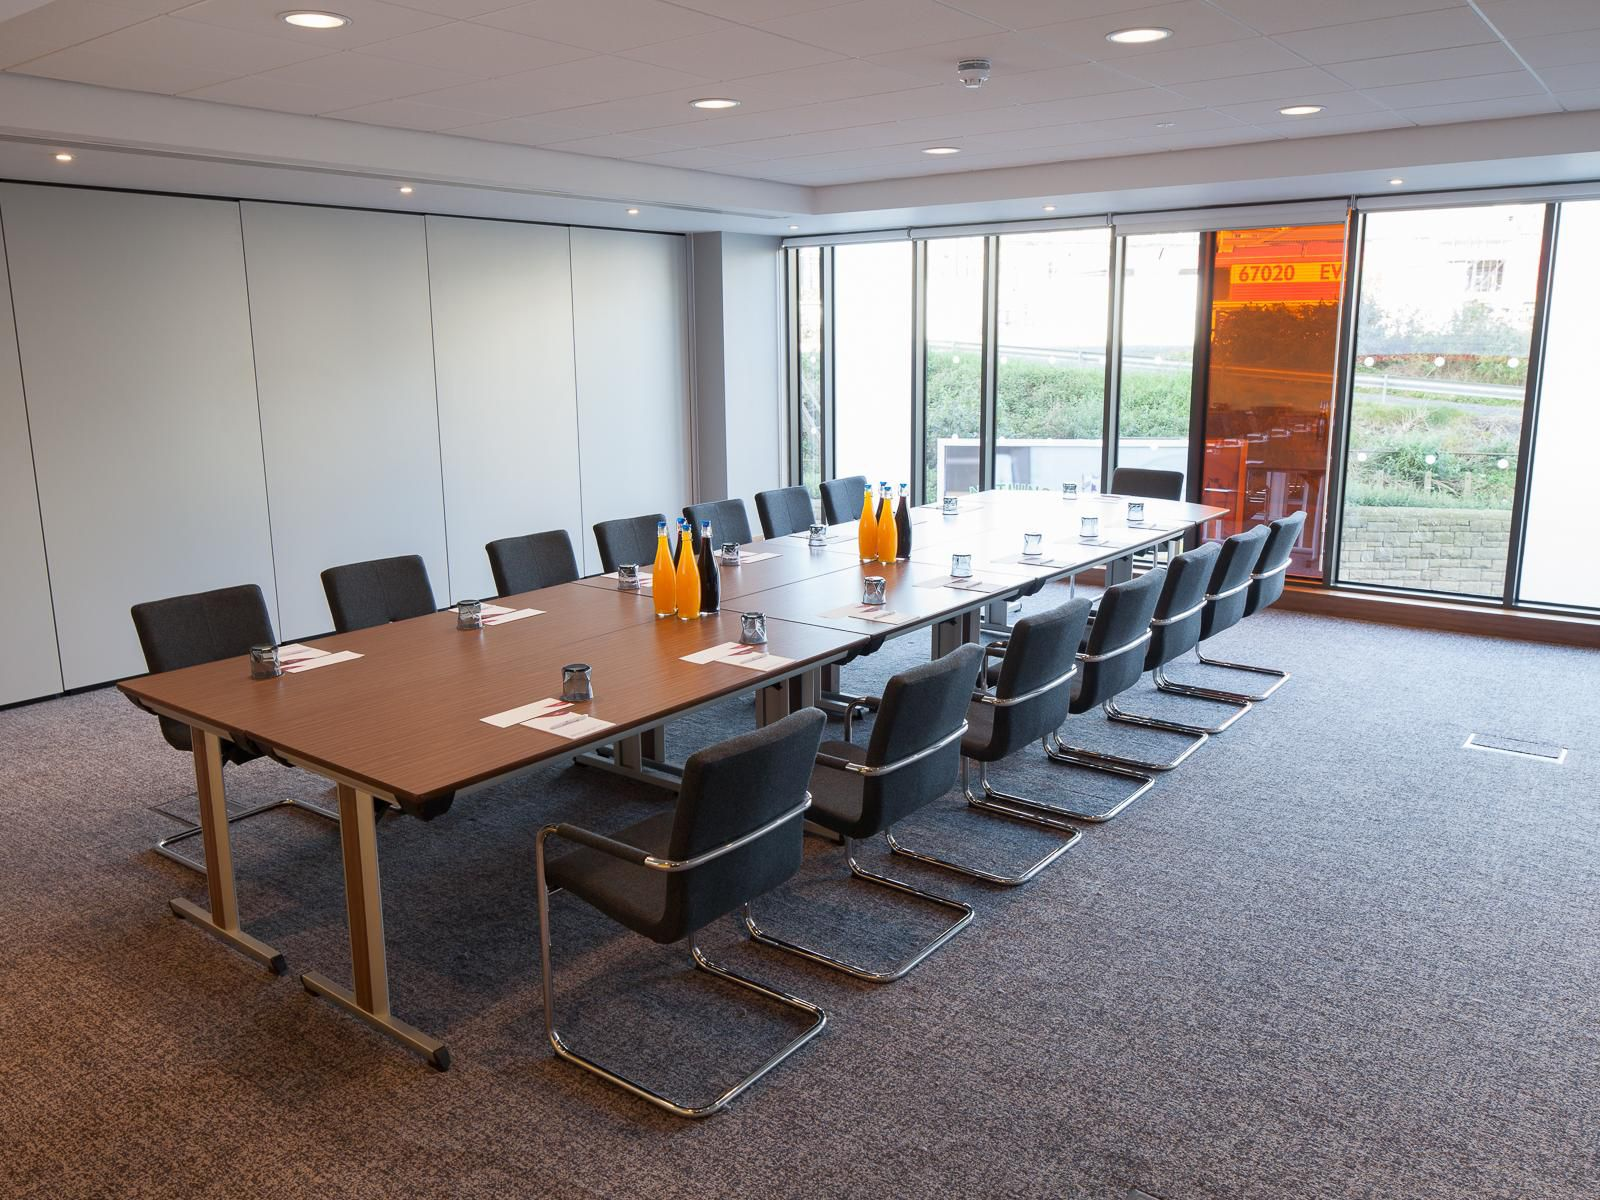 Crowne plaza newcastle office furniture newcastle uk for Office design newcastle